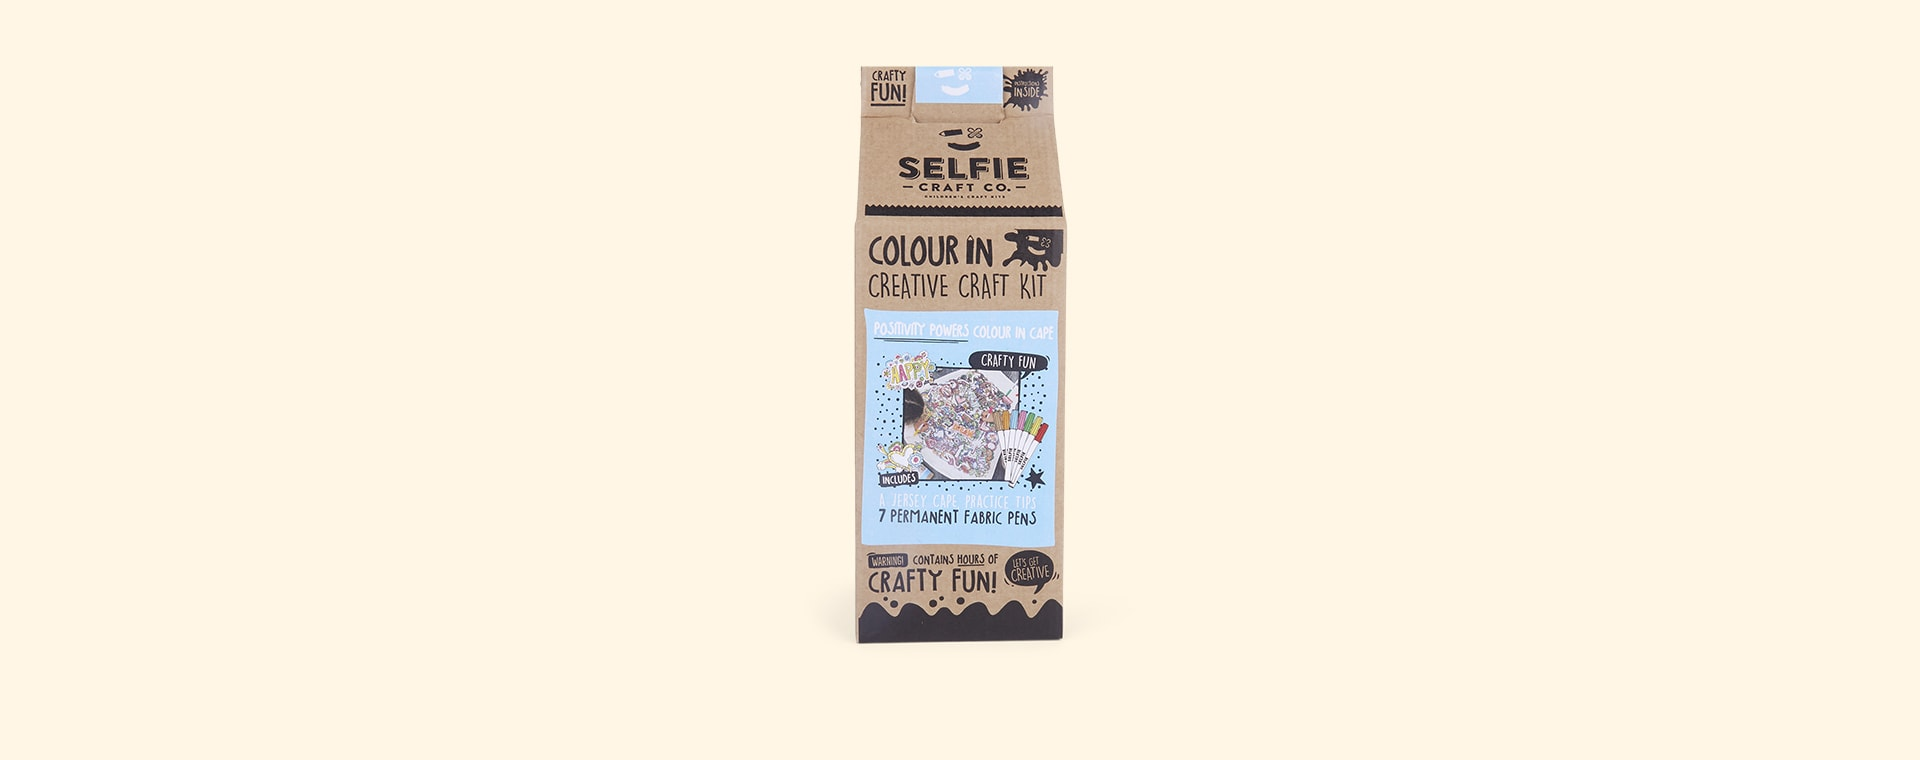 Positivity  Powers Selfie Craft Co Colour-In Cape